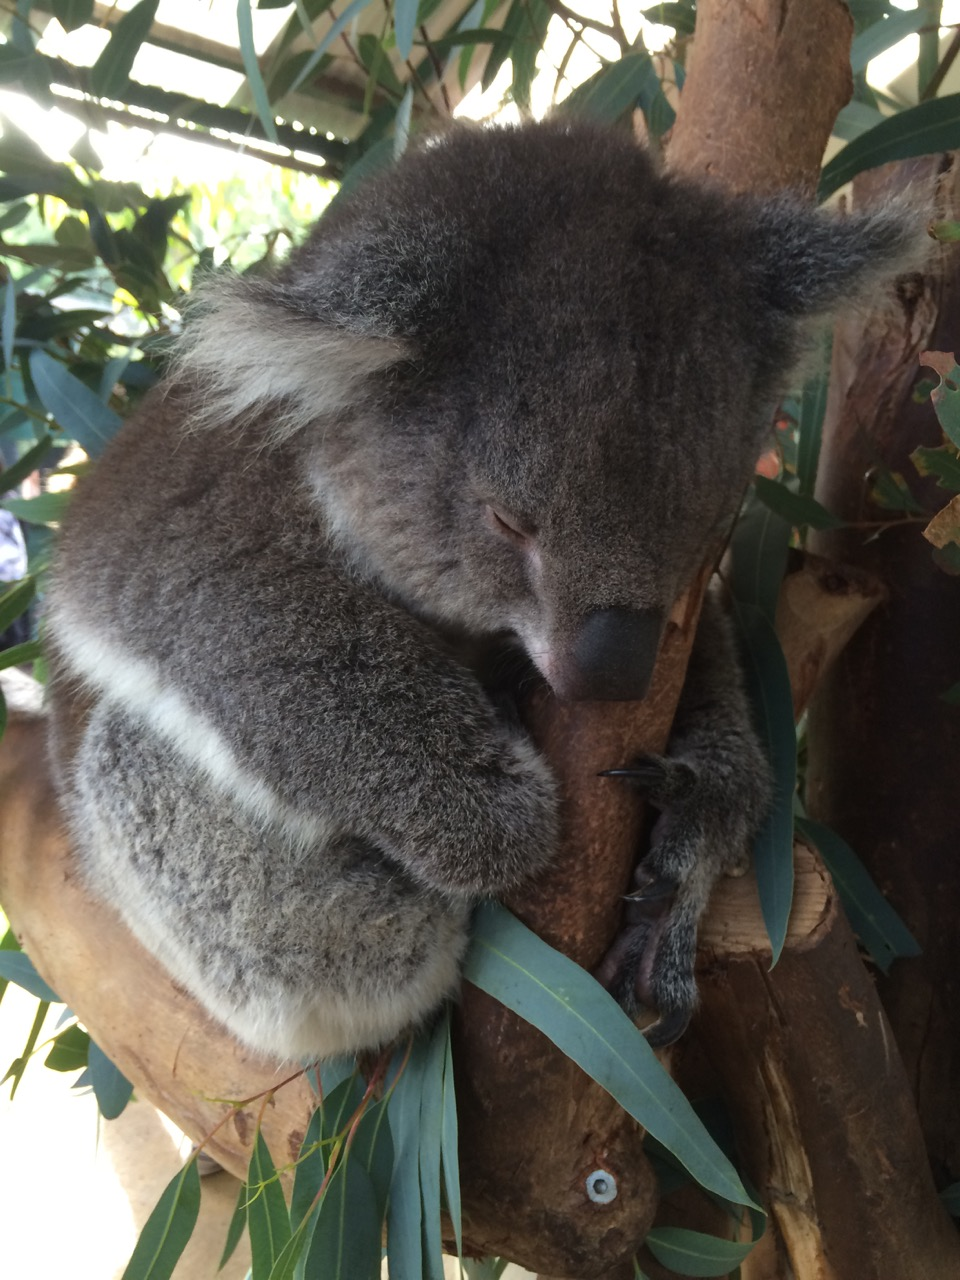 Koala at Caversham Wildlife Park